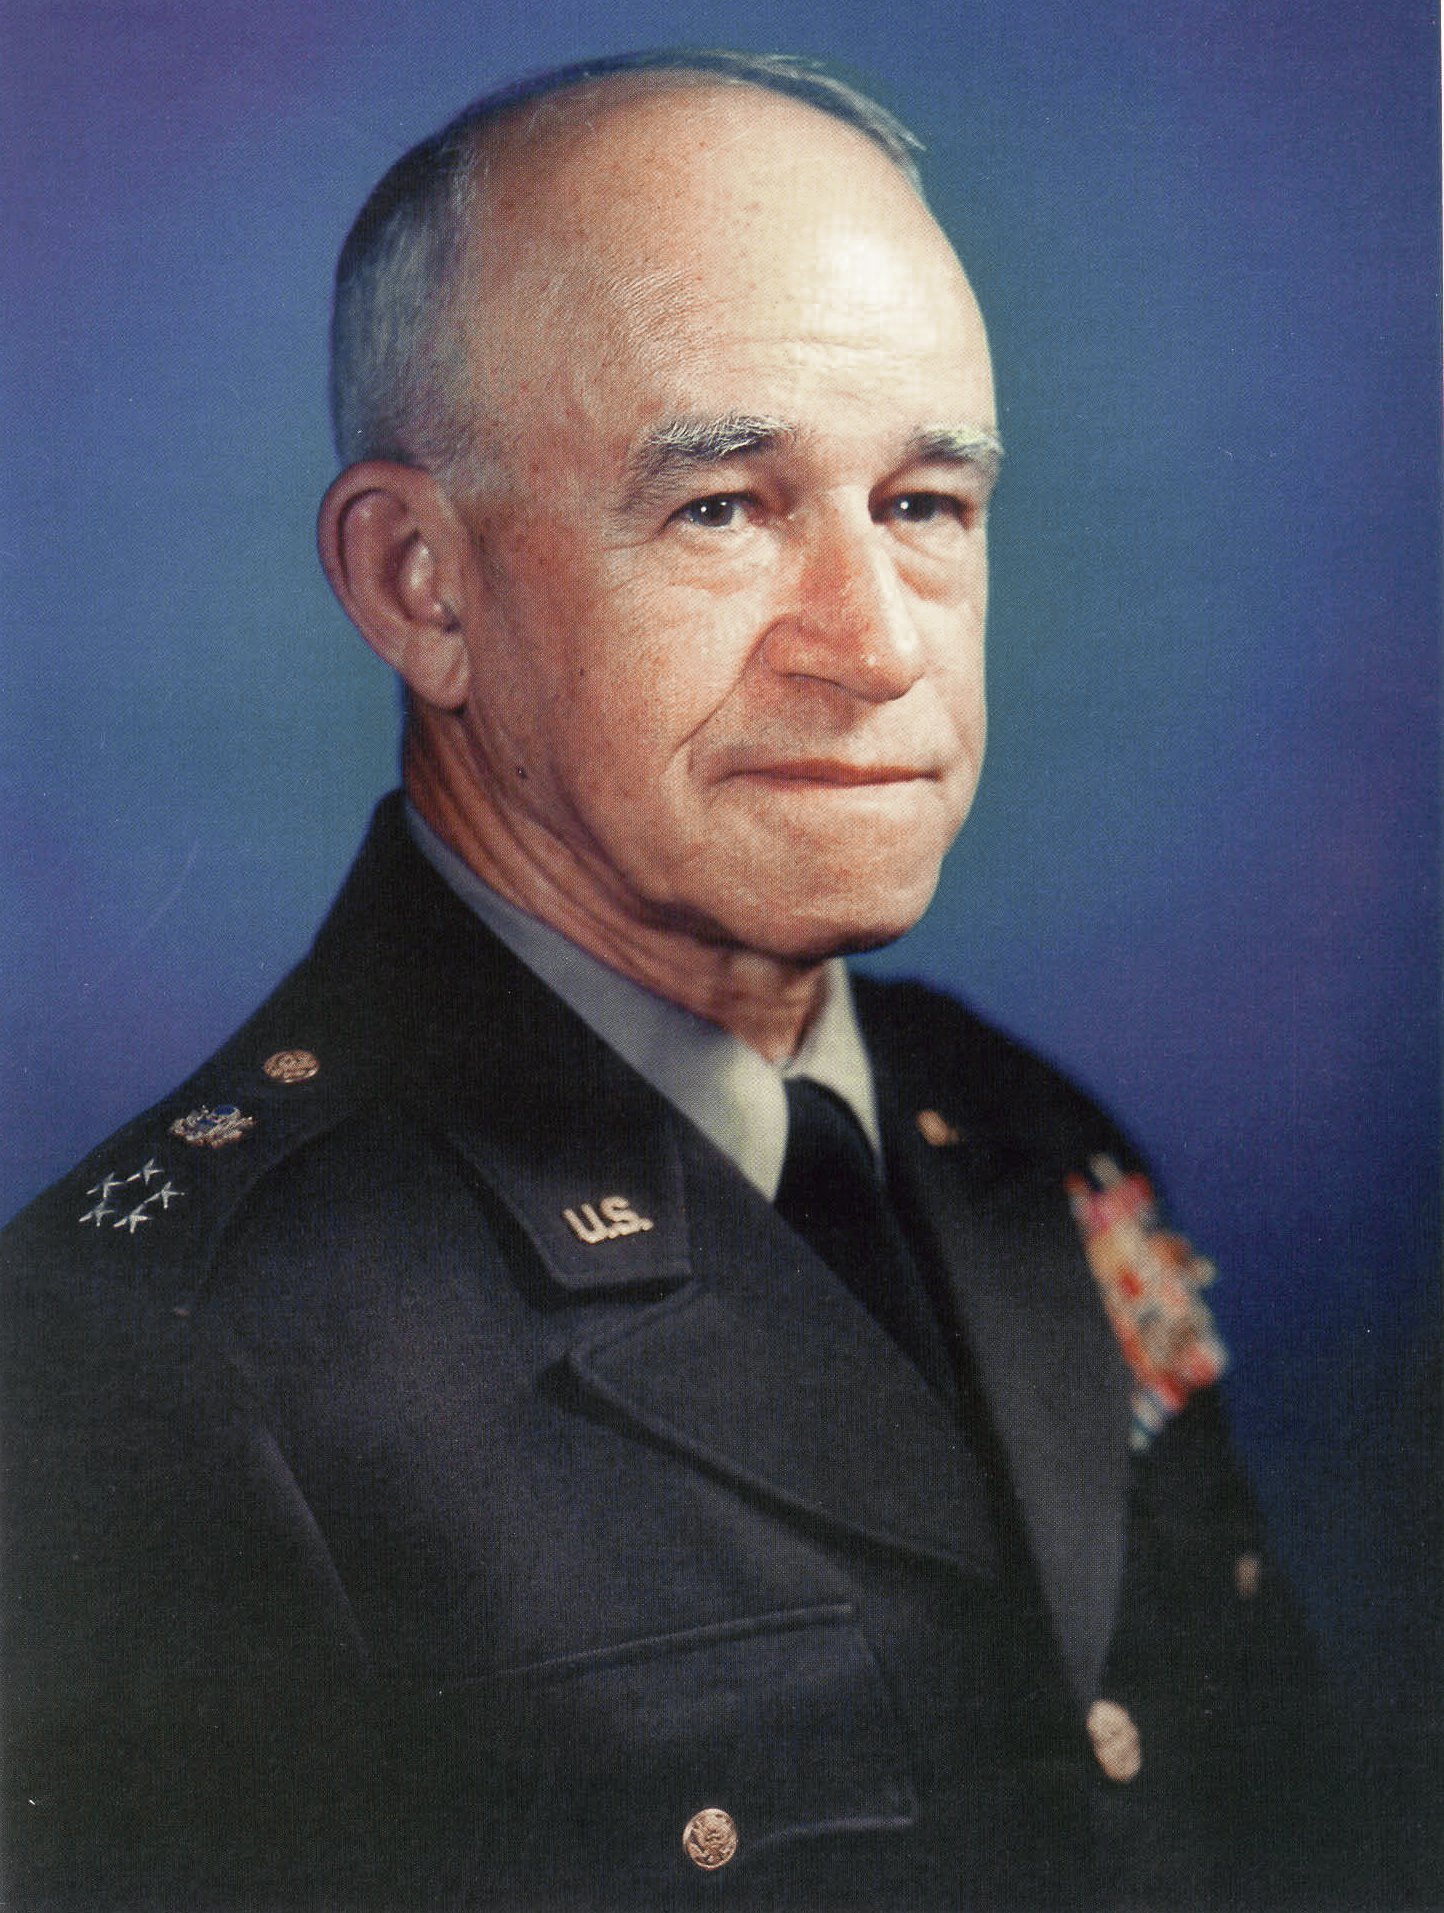 [Image: General_of_the_Army_Omar_Bradley.jpg]